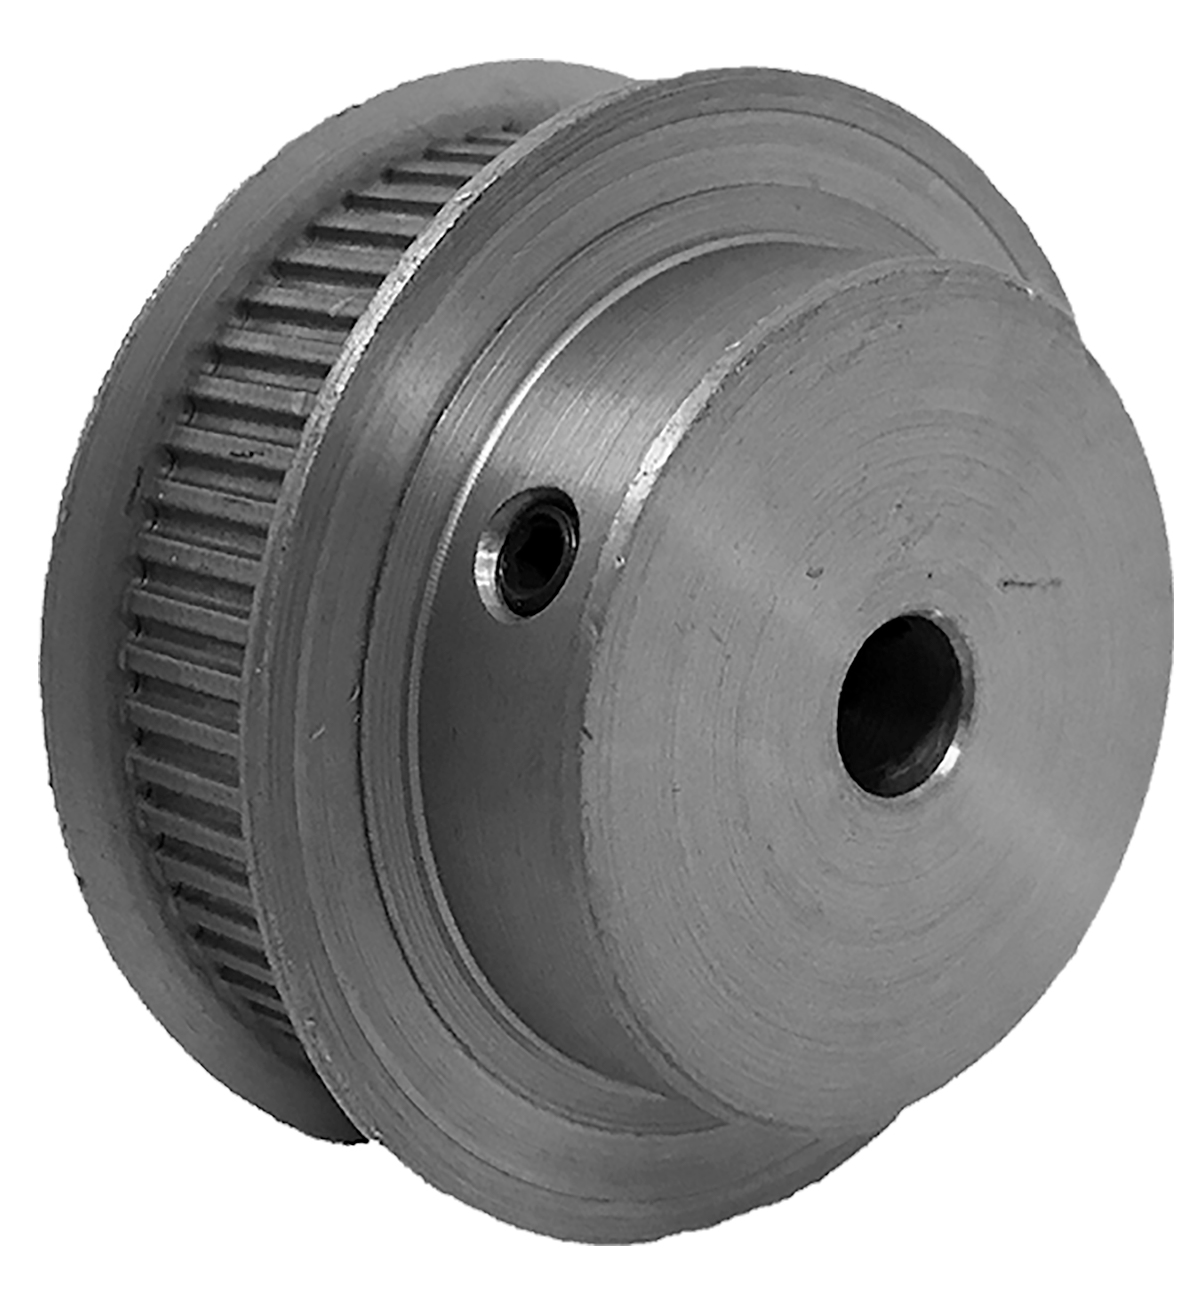 60MP037-6FA3 - Aluminum Imperial Pitch Pulleys